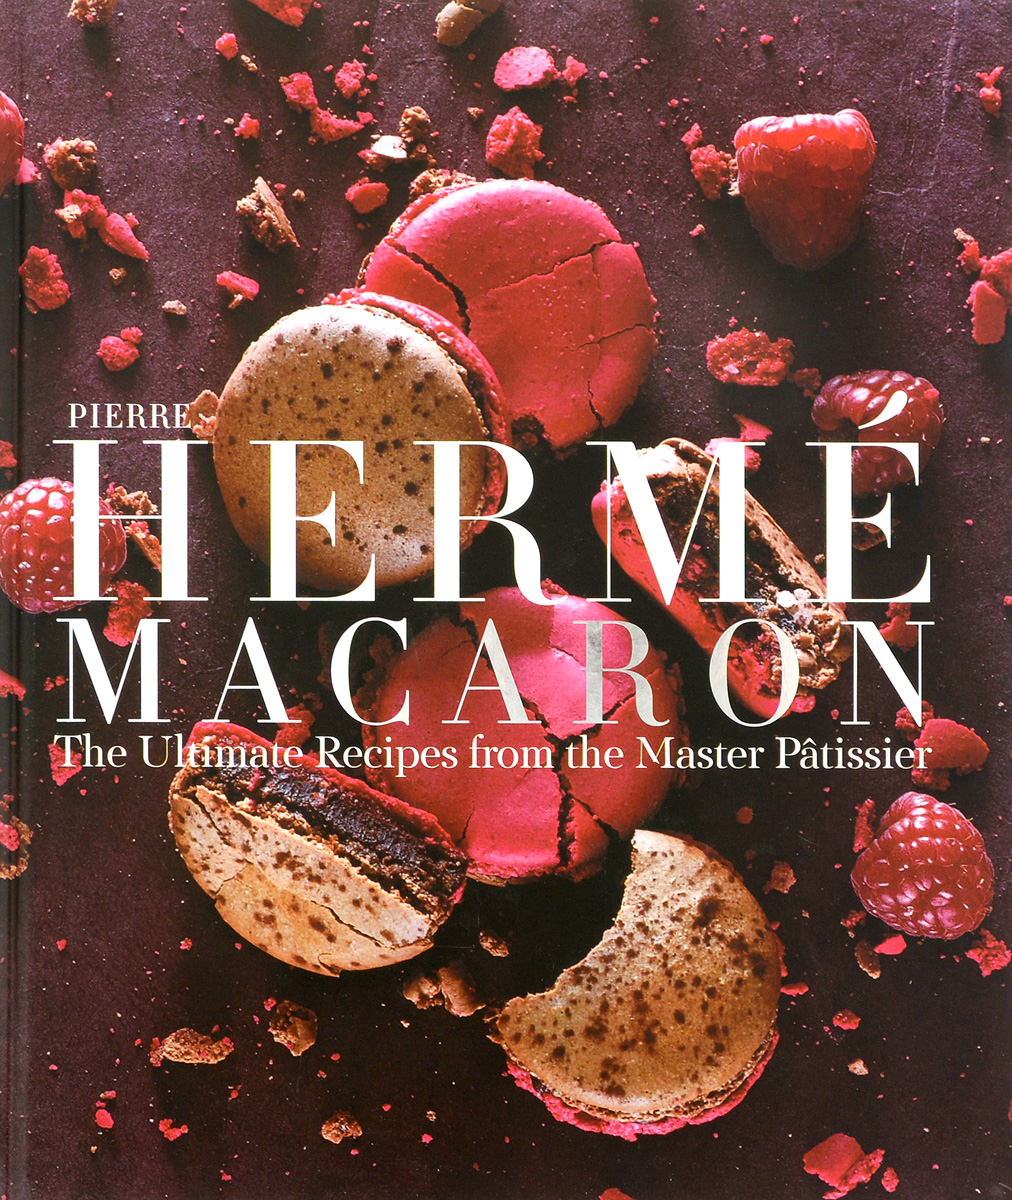 Pierre Herme Macaron the fundamental techniques of classic pastry arts